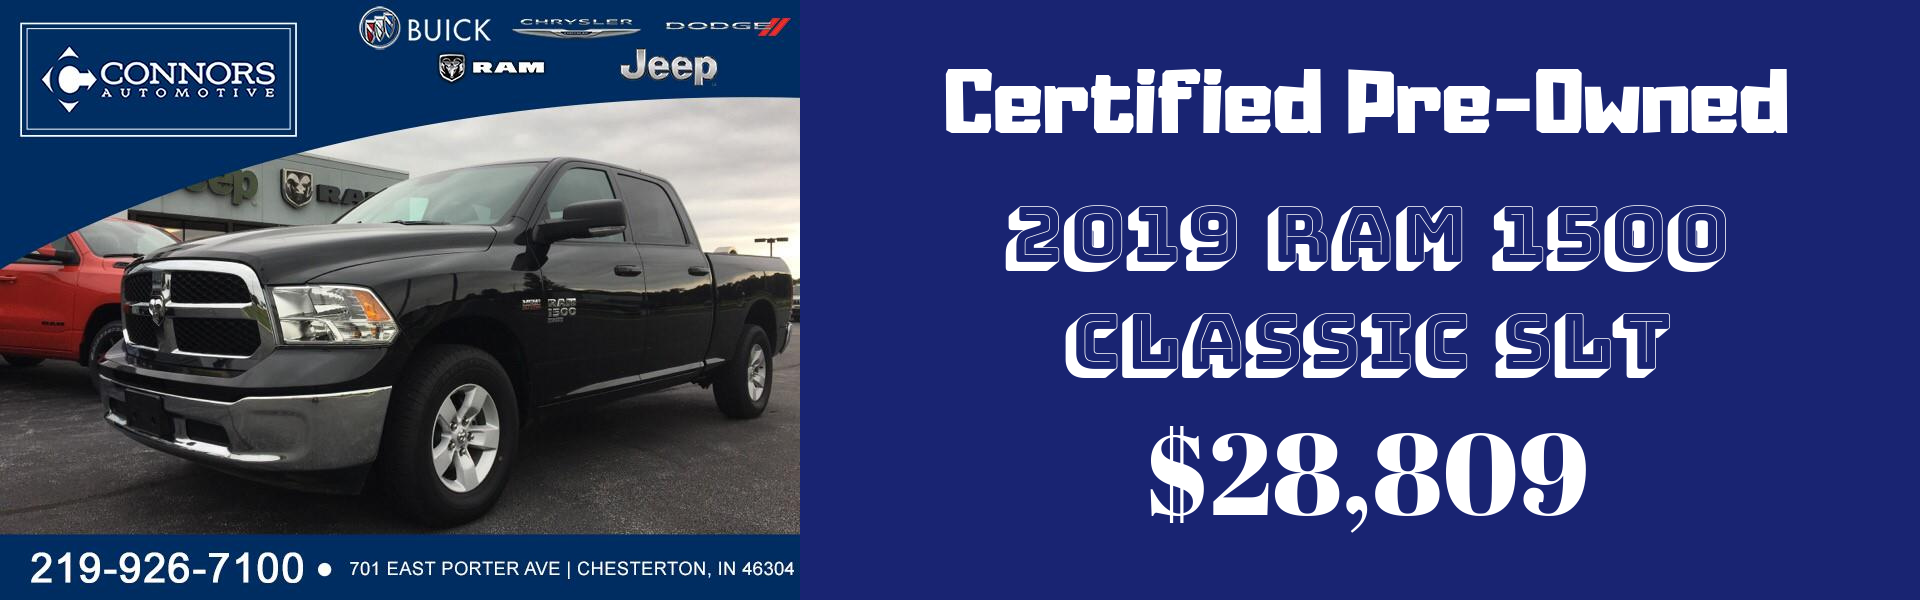 O Connor Chrysler >> New Used Car Dealership In Chesterton In Connors